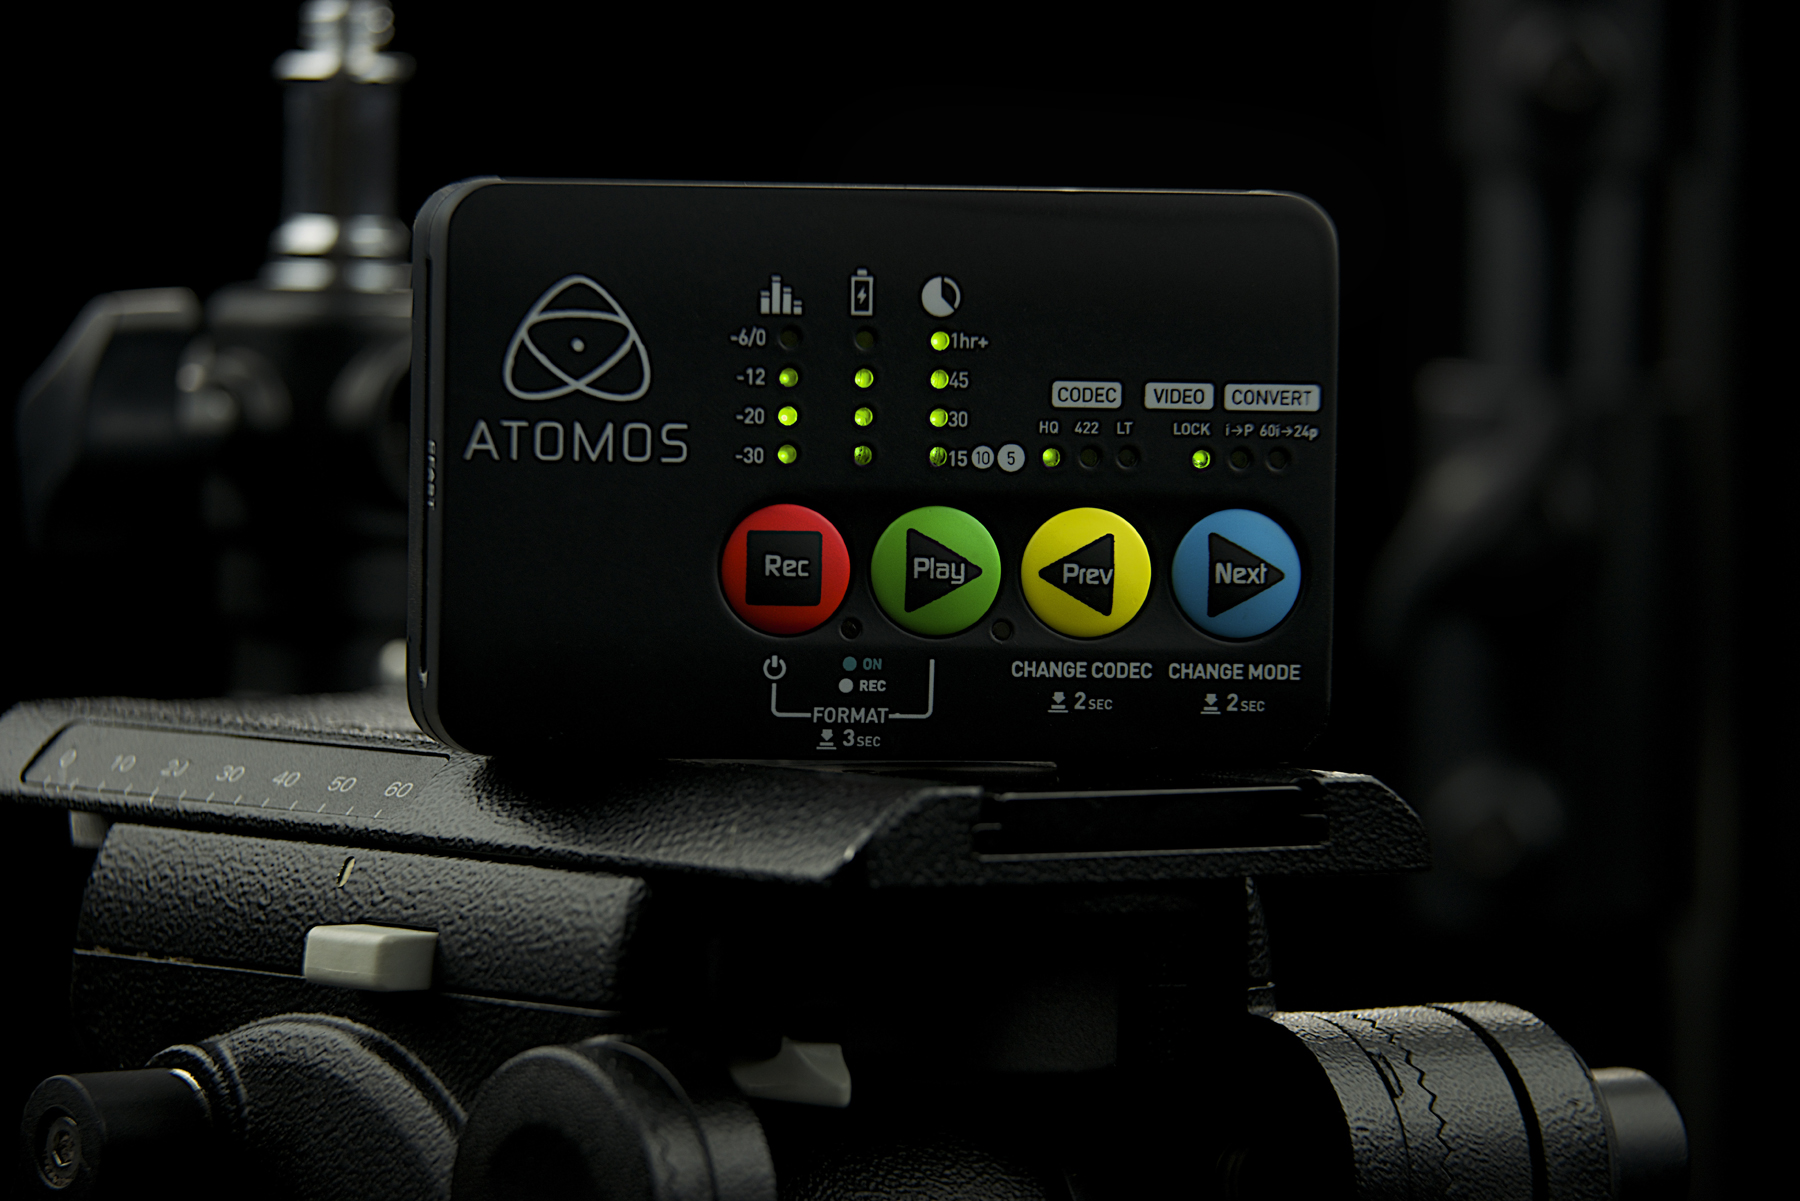 Atomos Ship World's Smallest ProRes Recorder 4